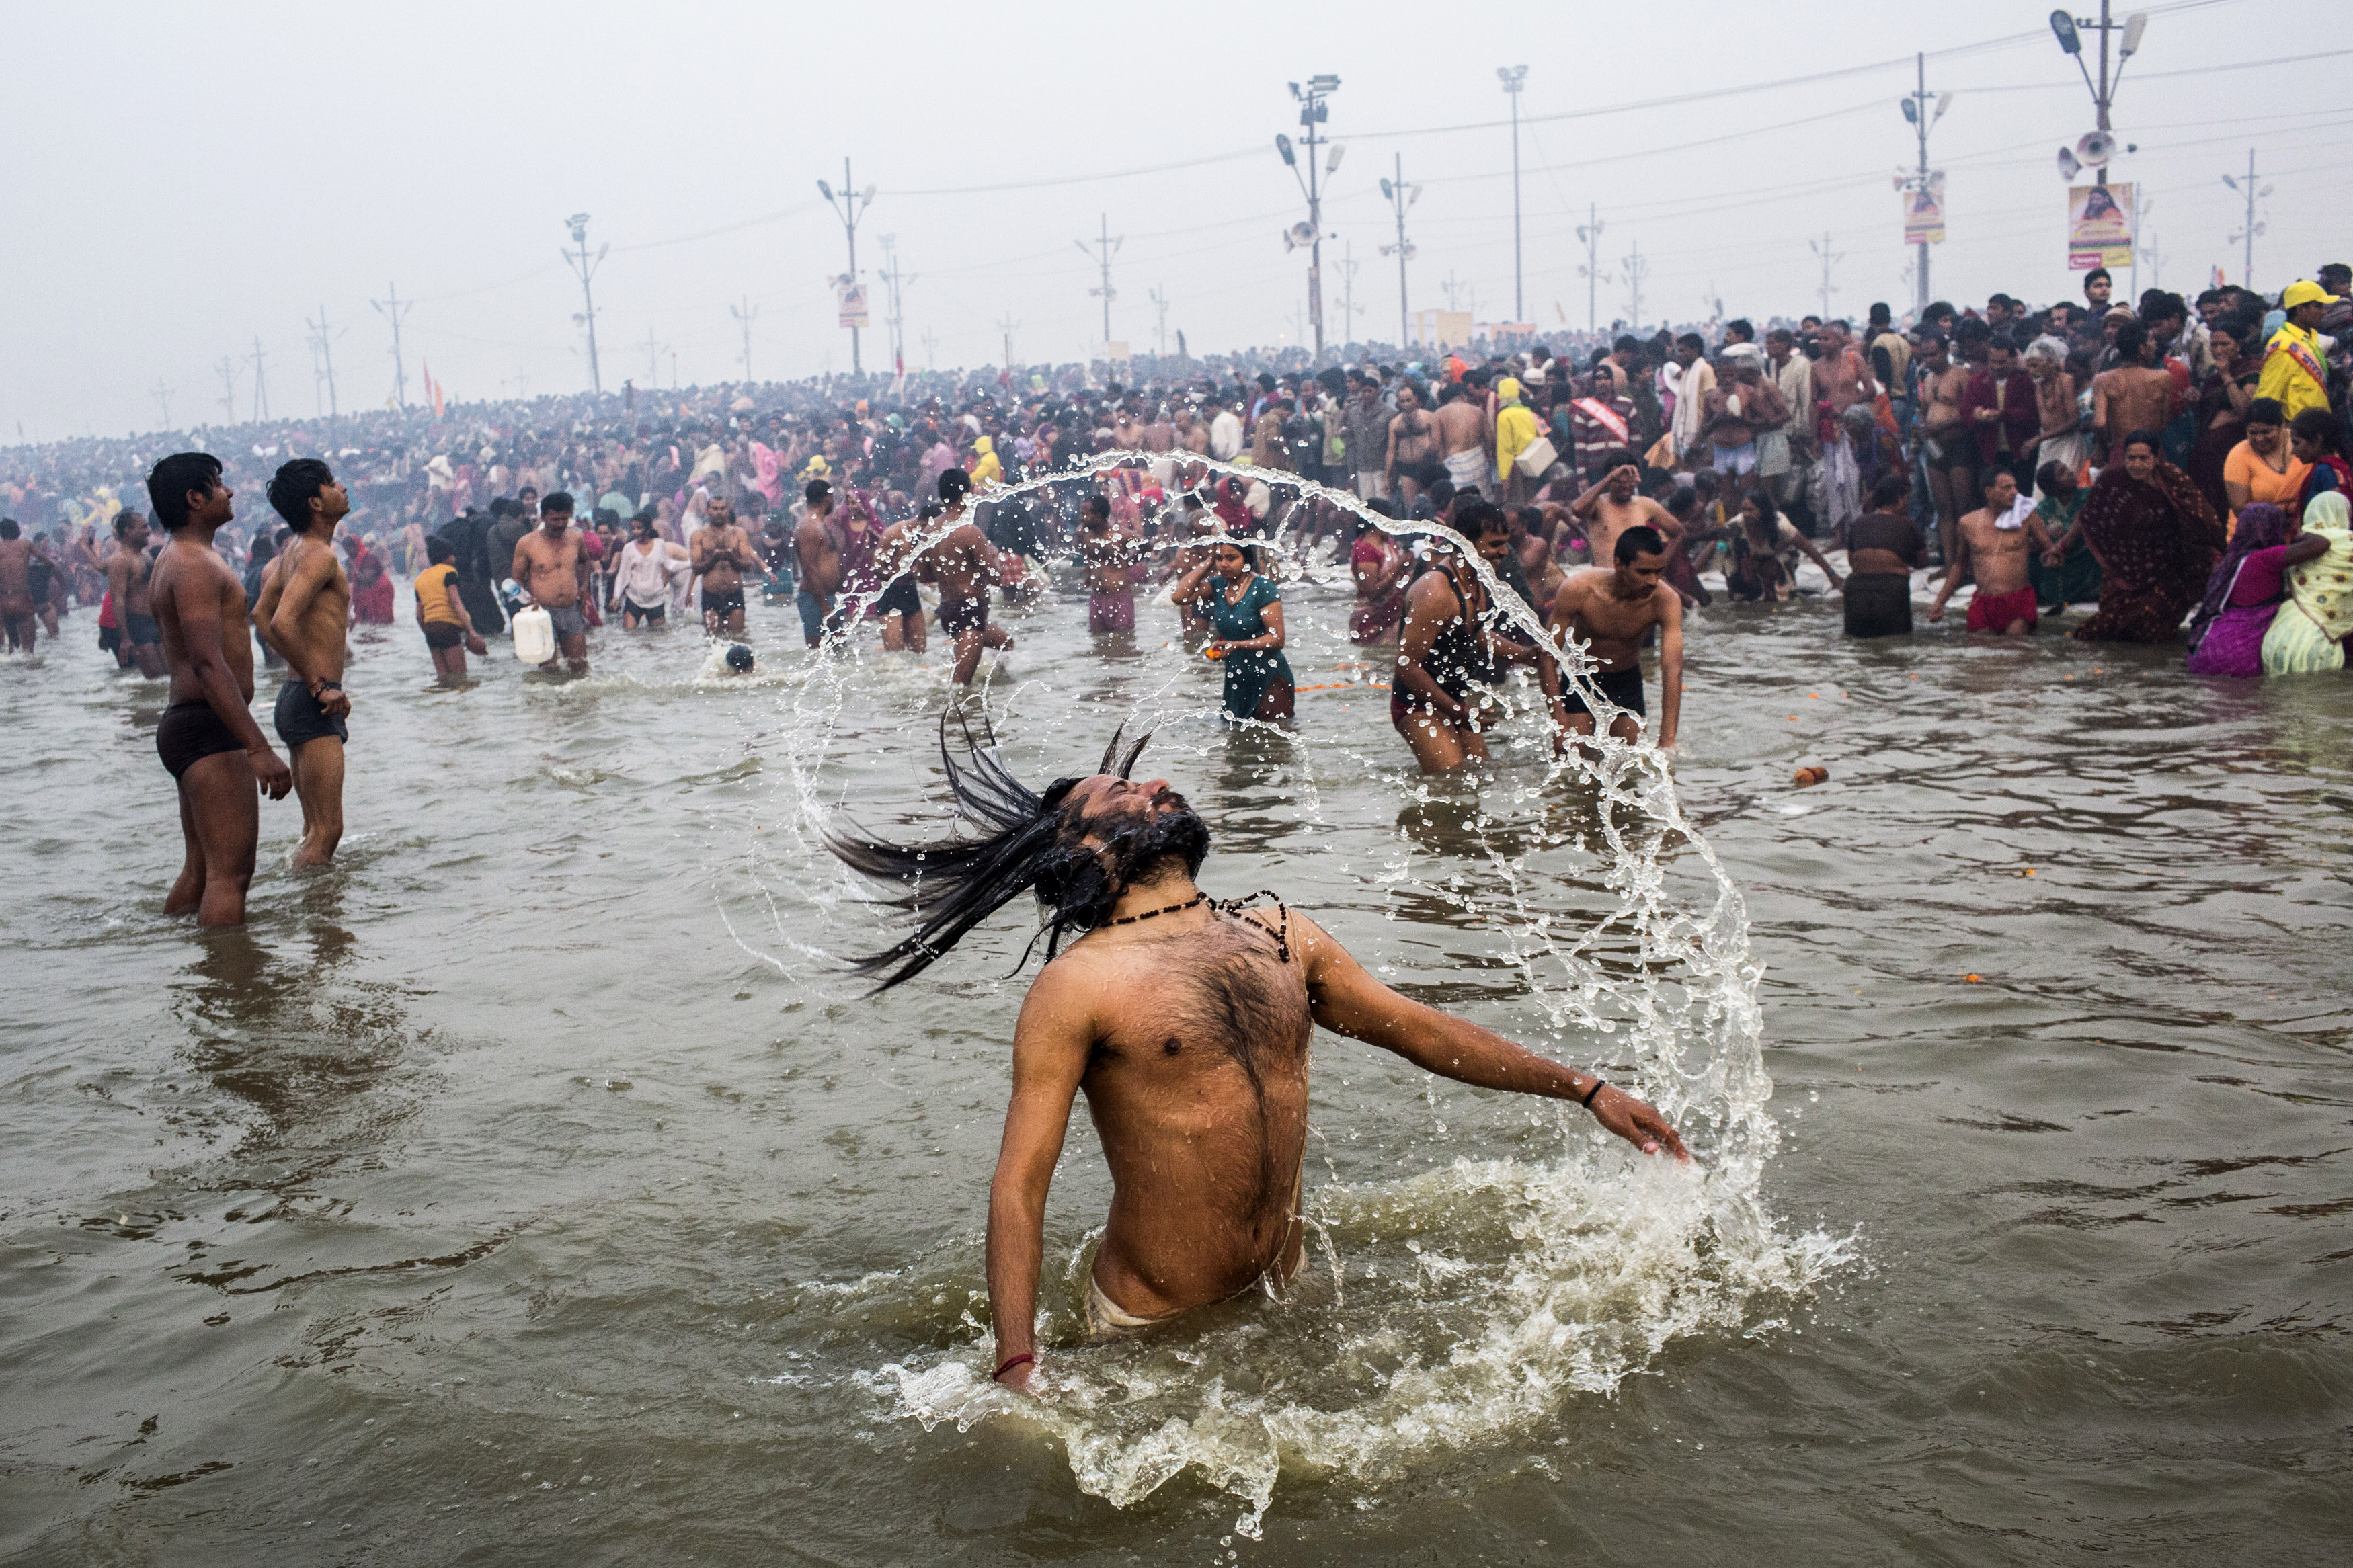 A Hindu holy man, or Naga Sadhu, swings his hair during the royal bath on Makar Sankranti.